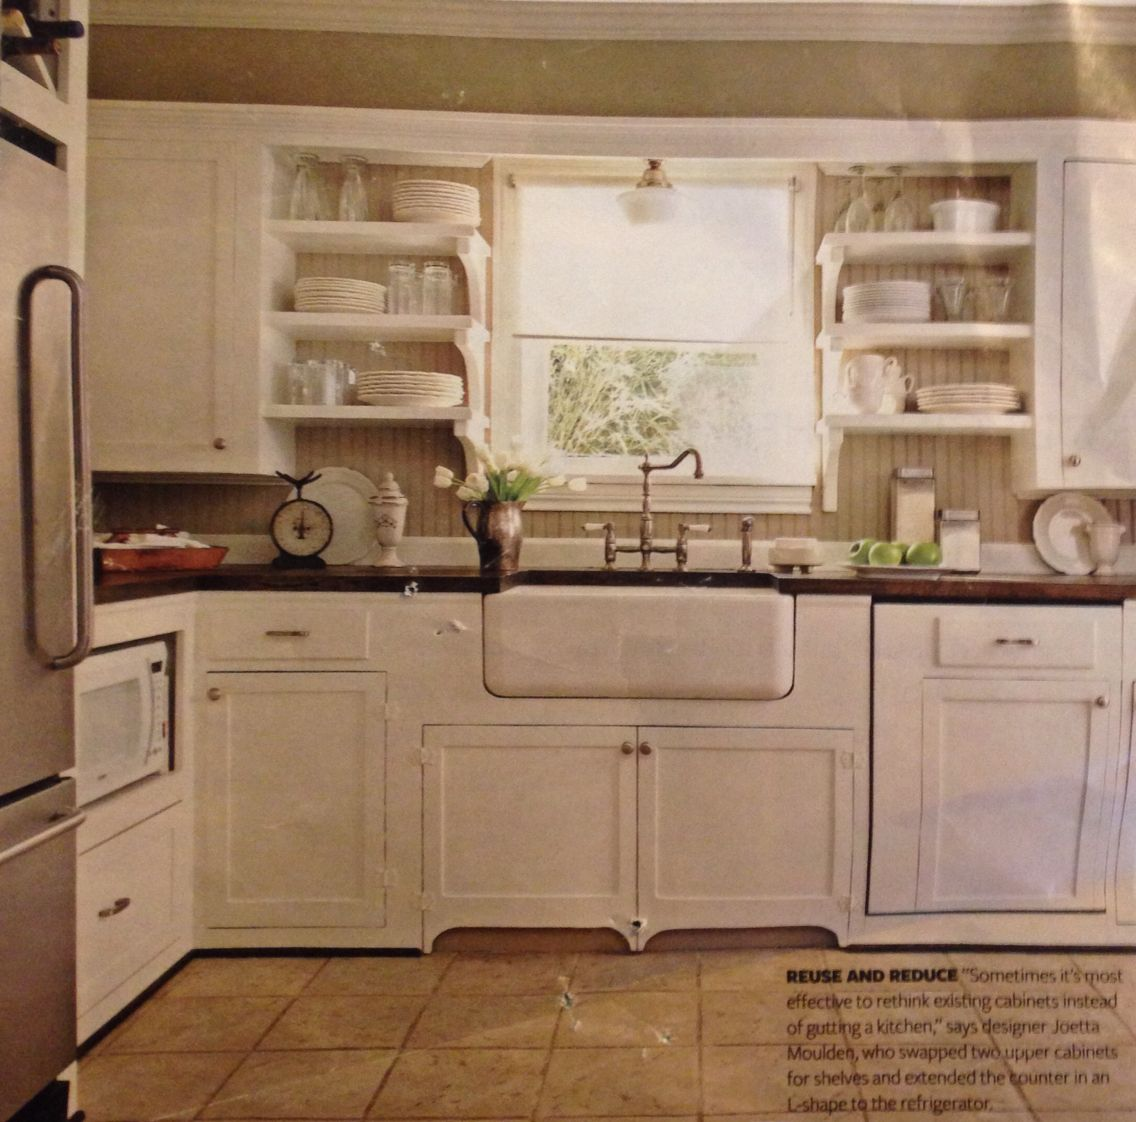 Shelf over kitchen window  love the white kitchen with the farm sink and open shelves the